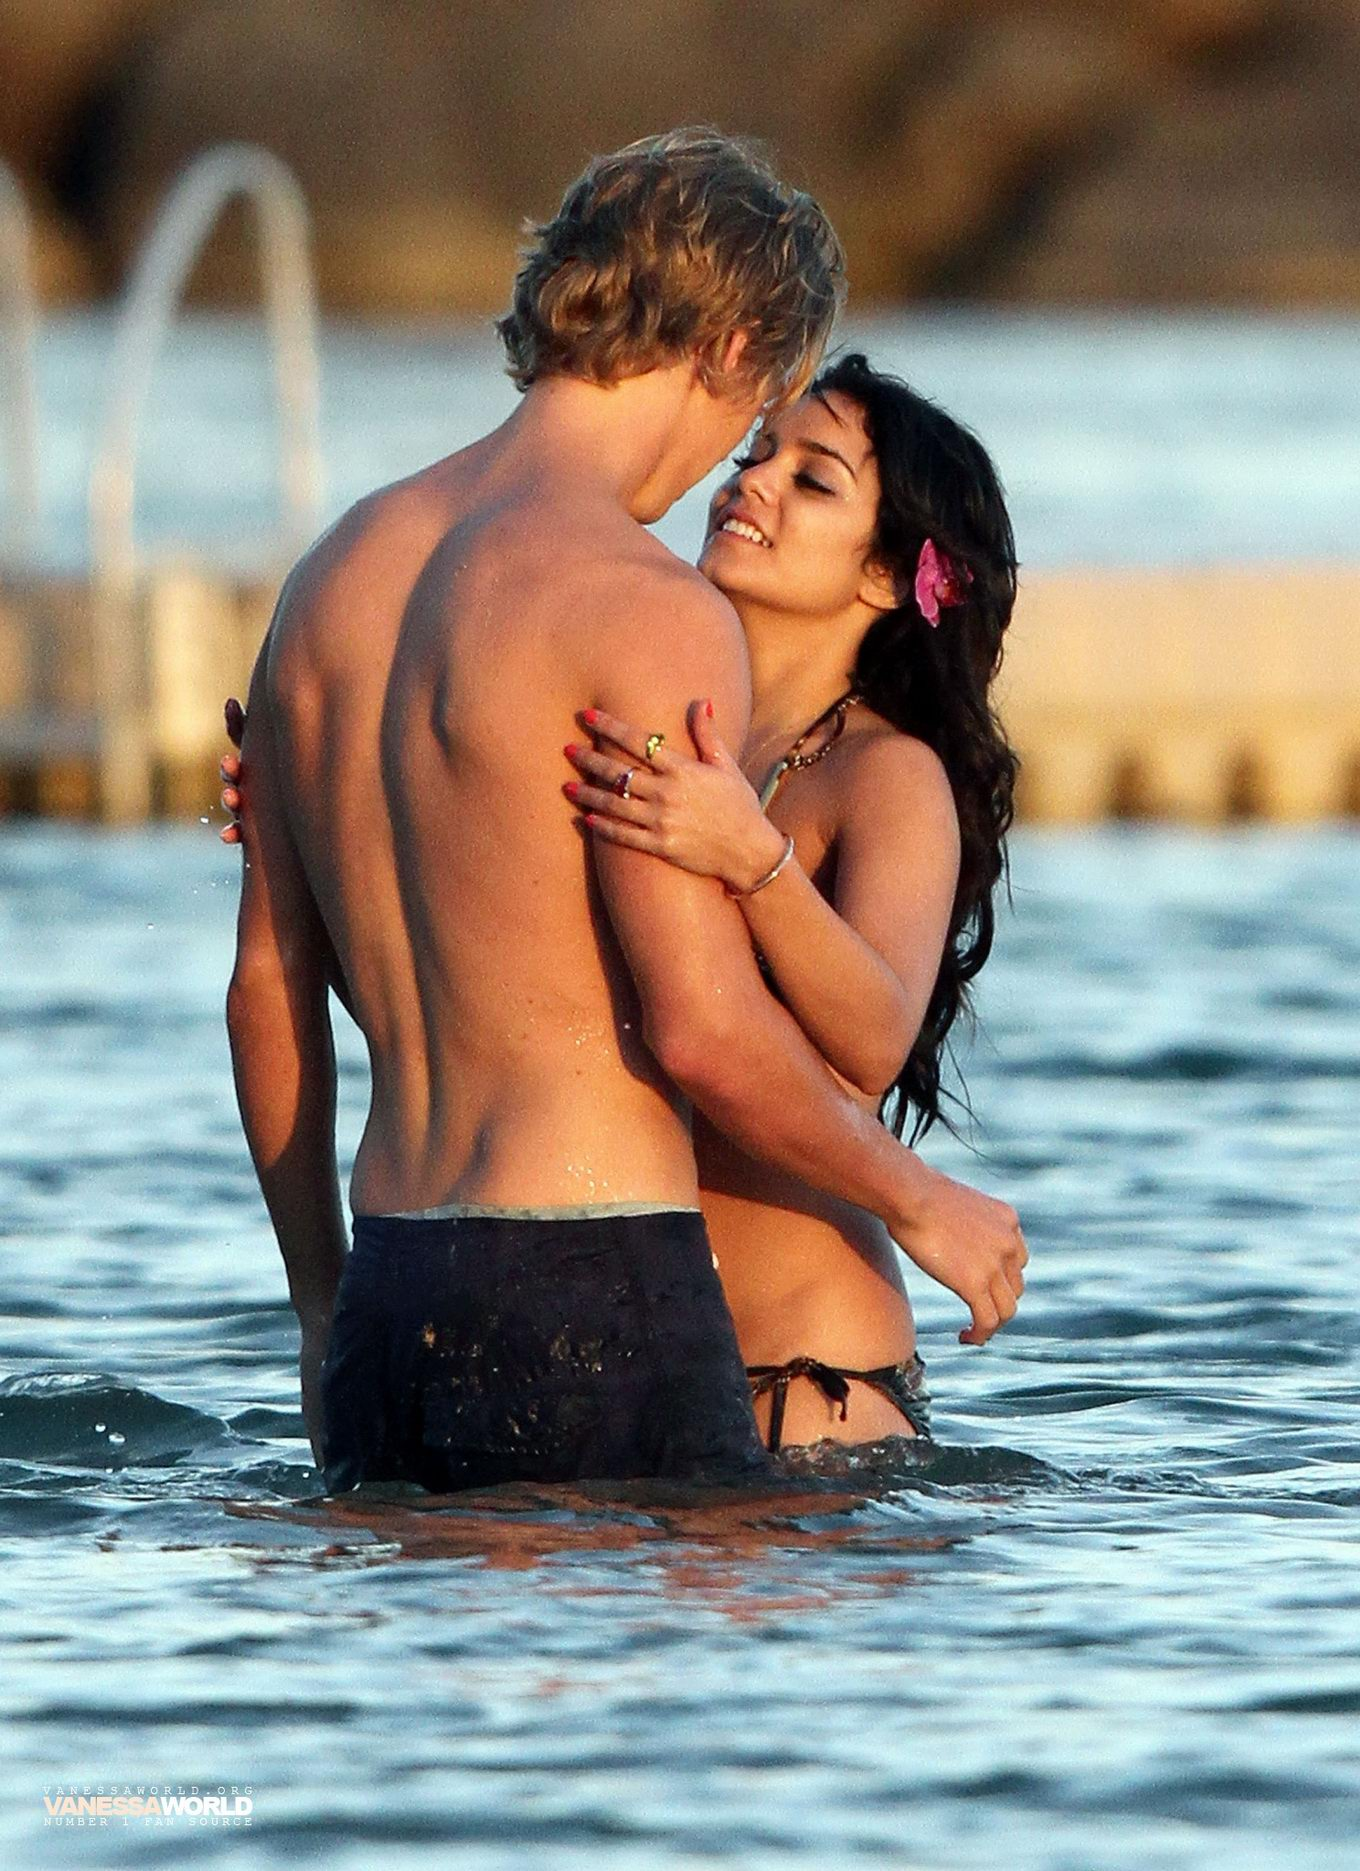 Vanessa Hudgens Comments About Dating Zac Efron During Their Disney Days Are So, So Real